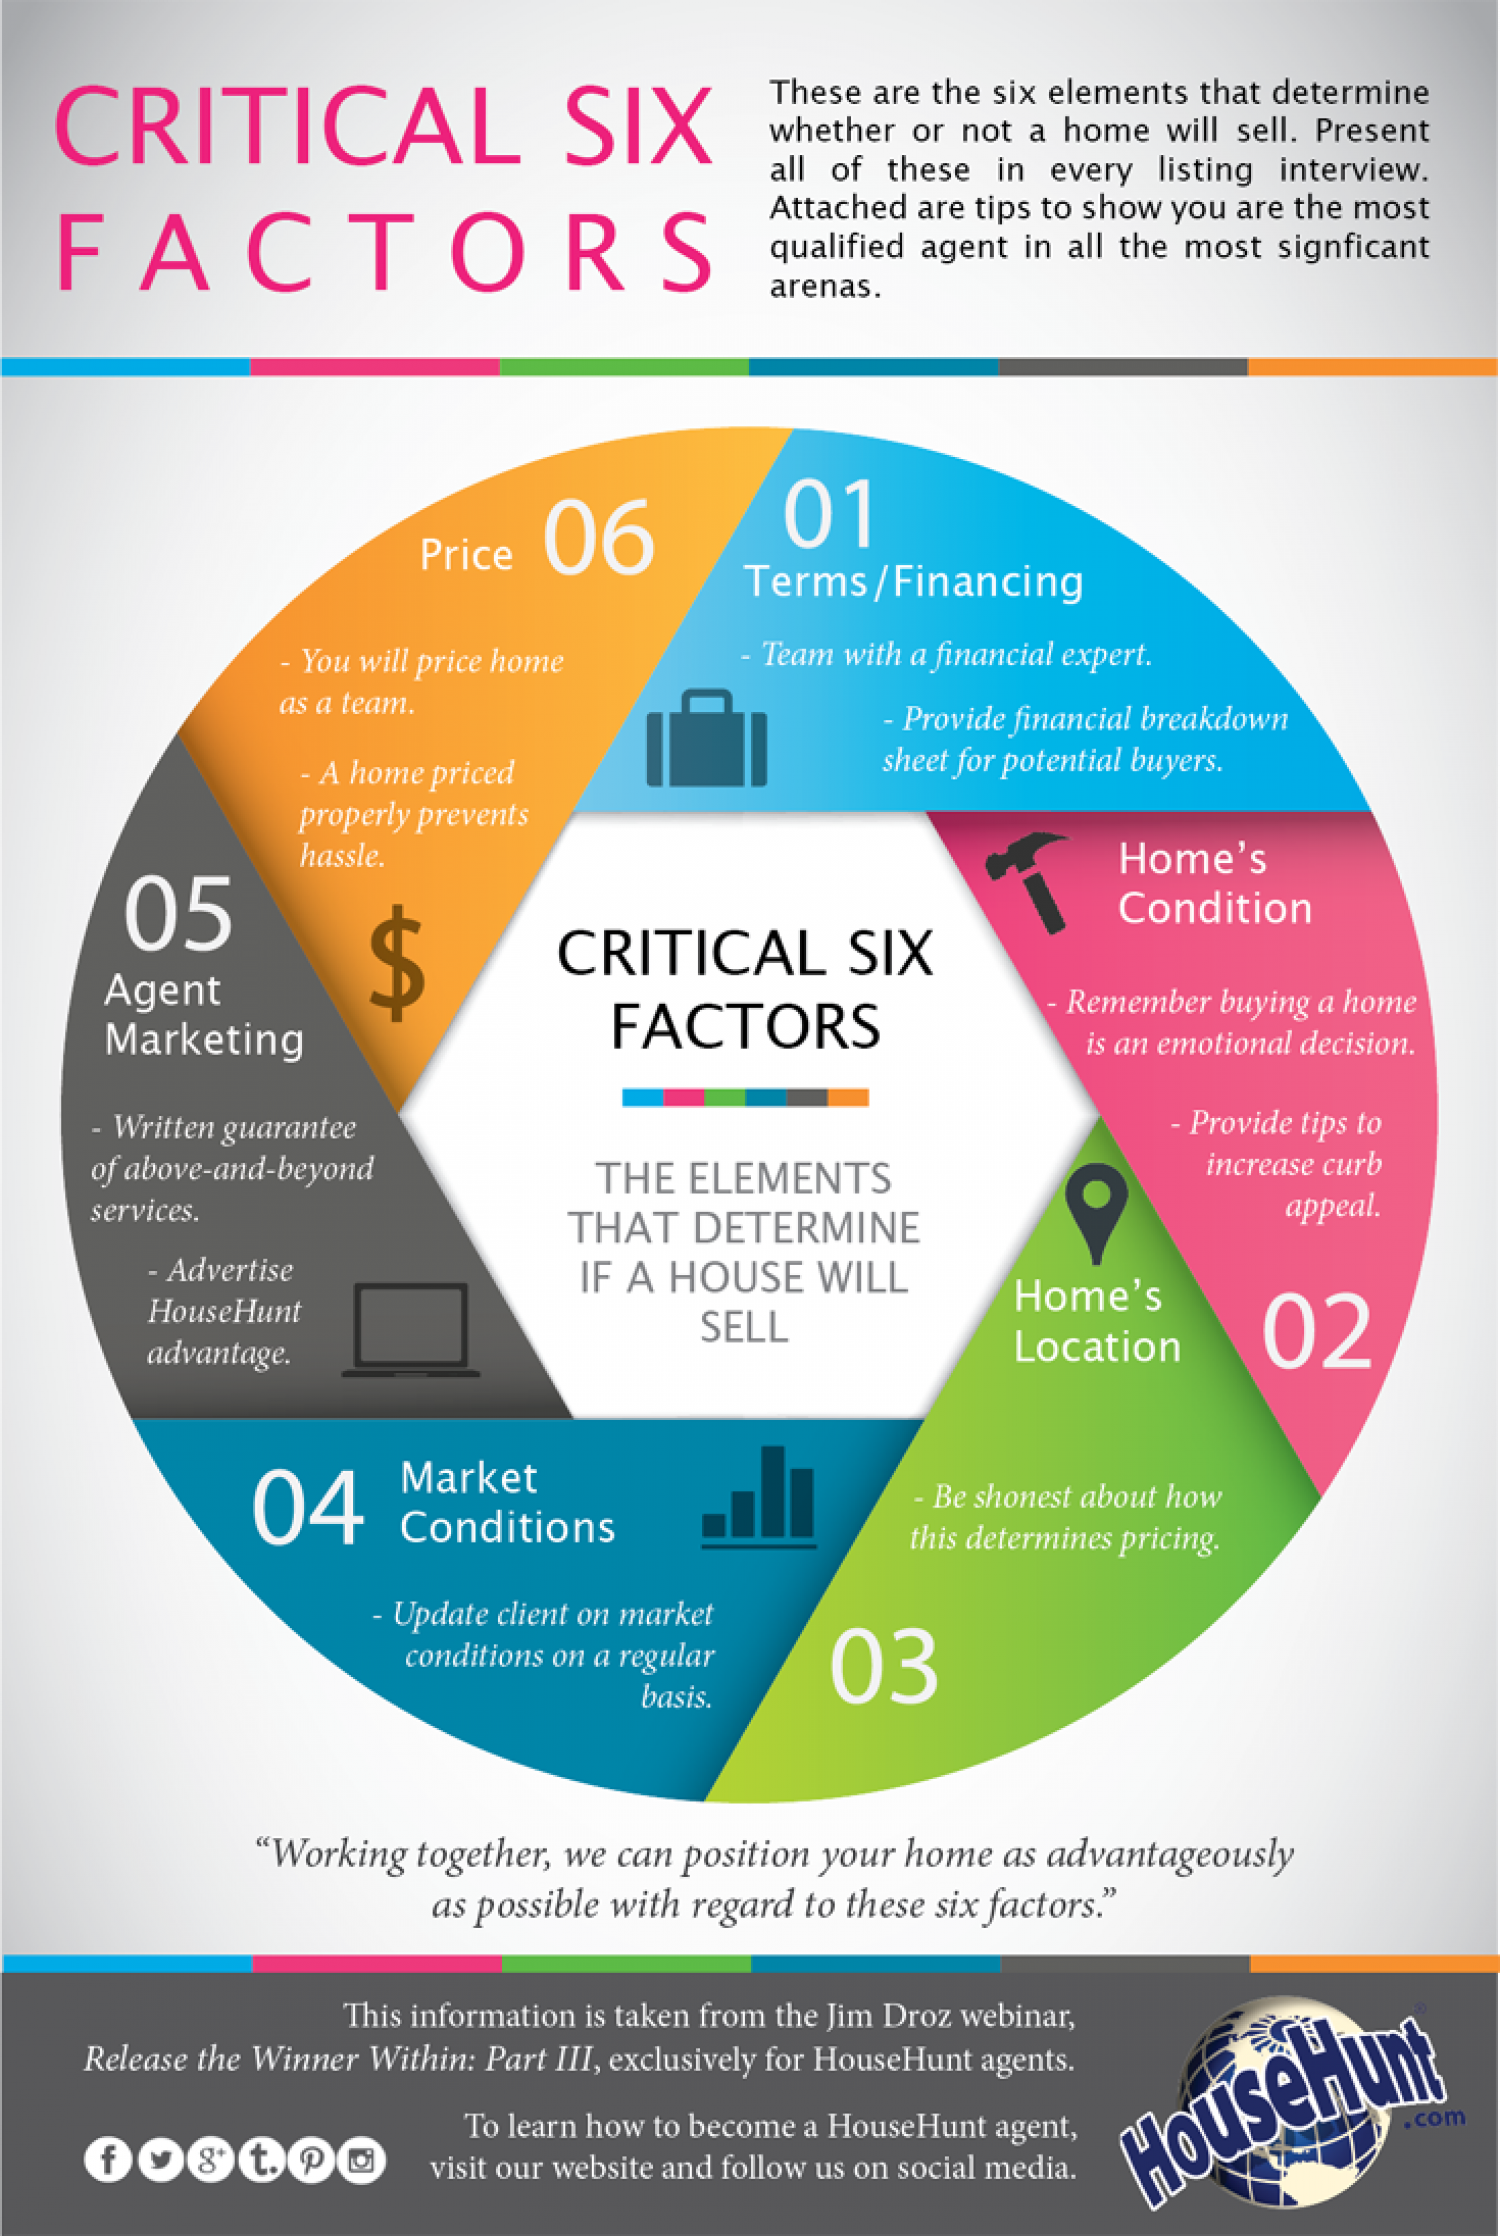 Critical 6 Factors to Sell a Home Infographic